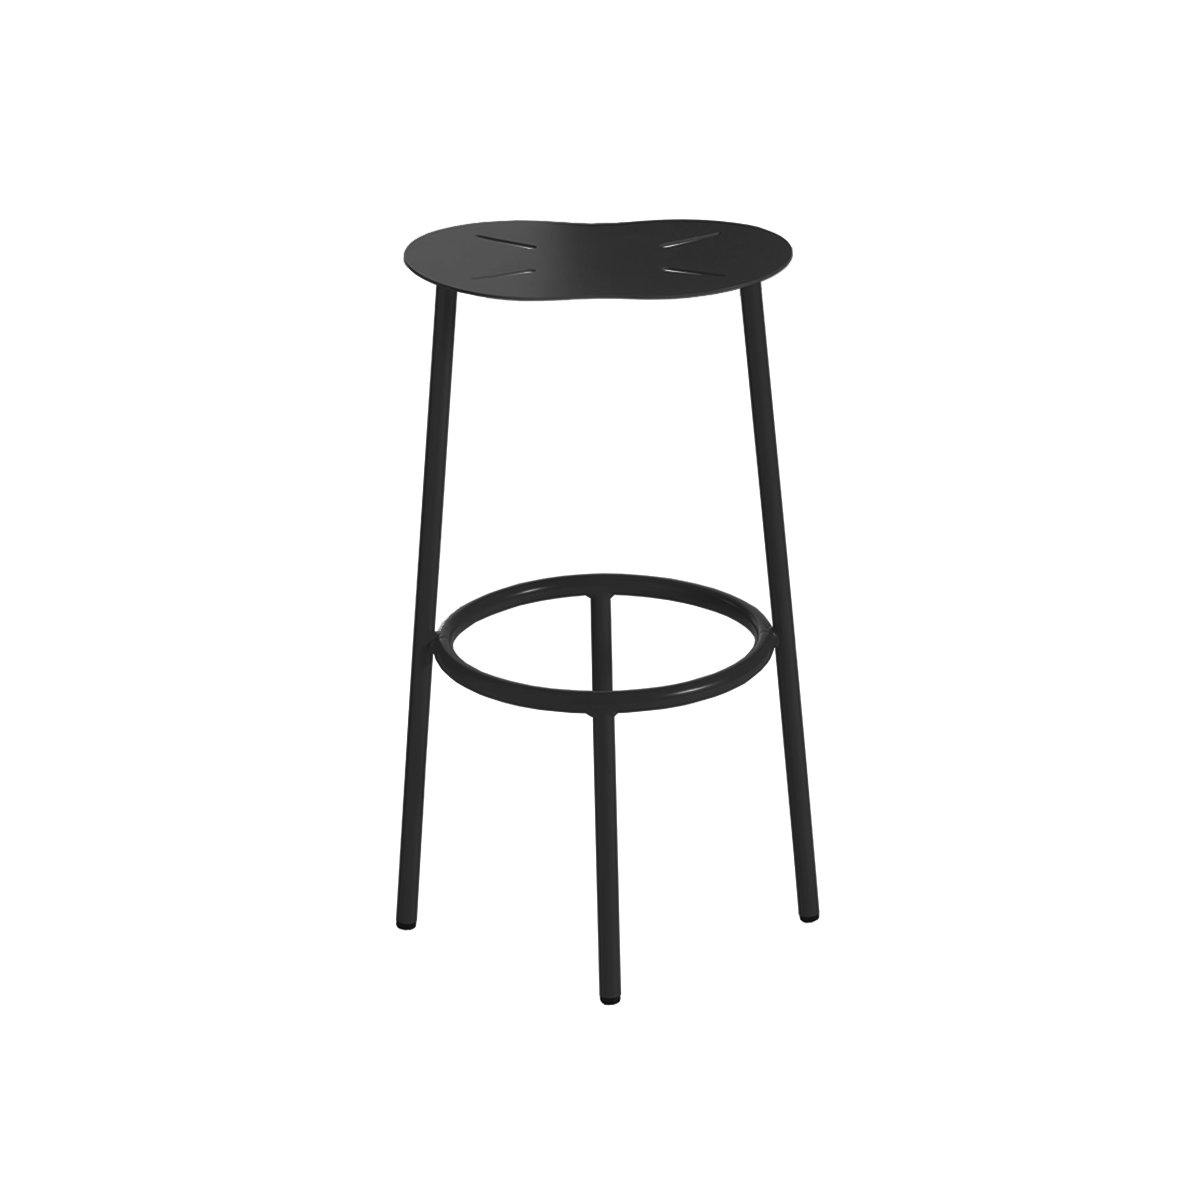 400 Cloud Stool By Kazuko Okamoto For Capdell For Sale At Pamono